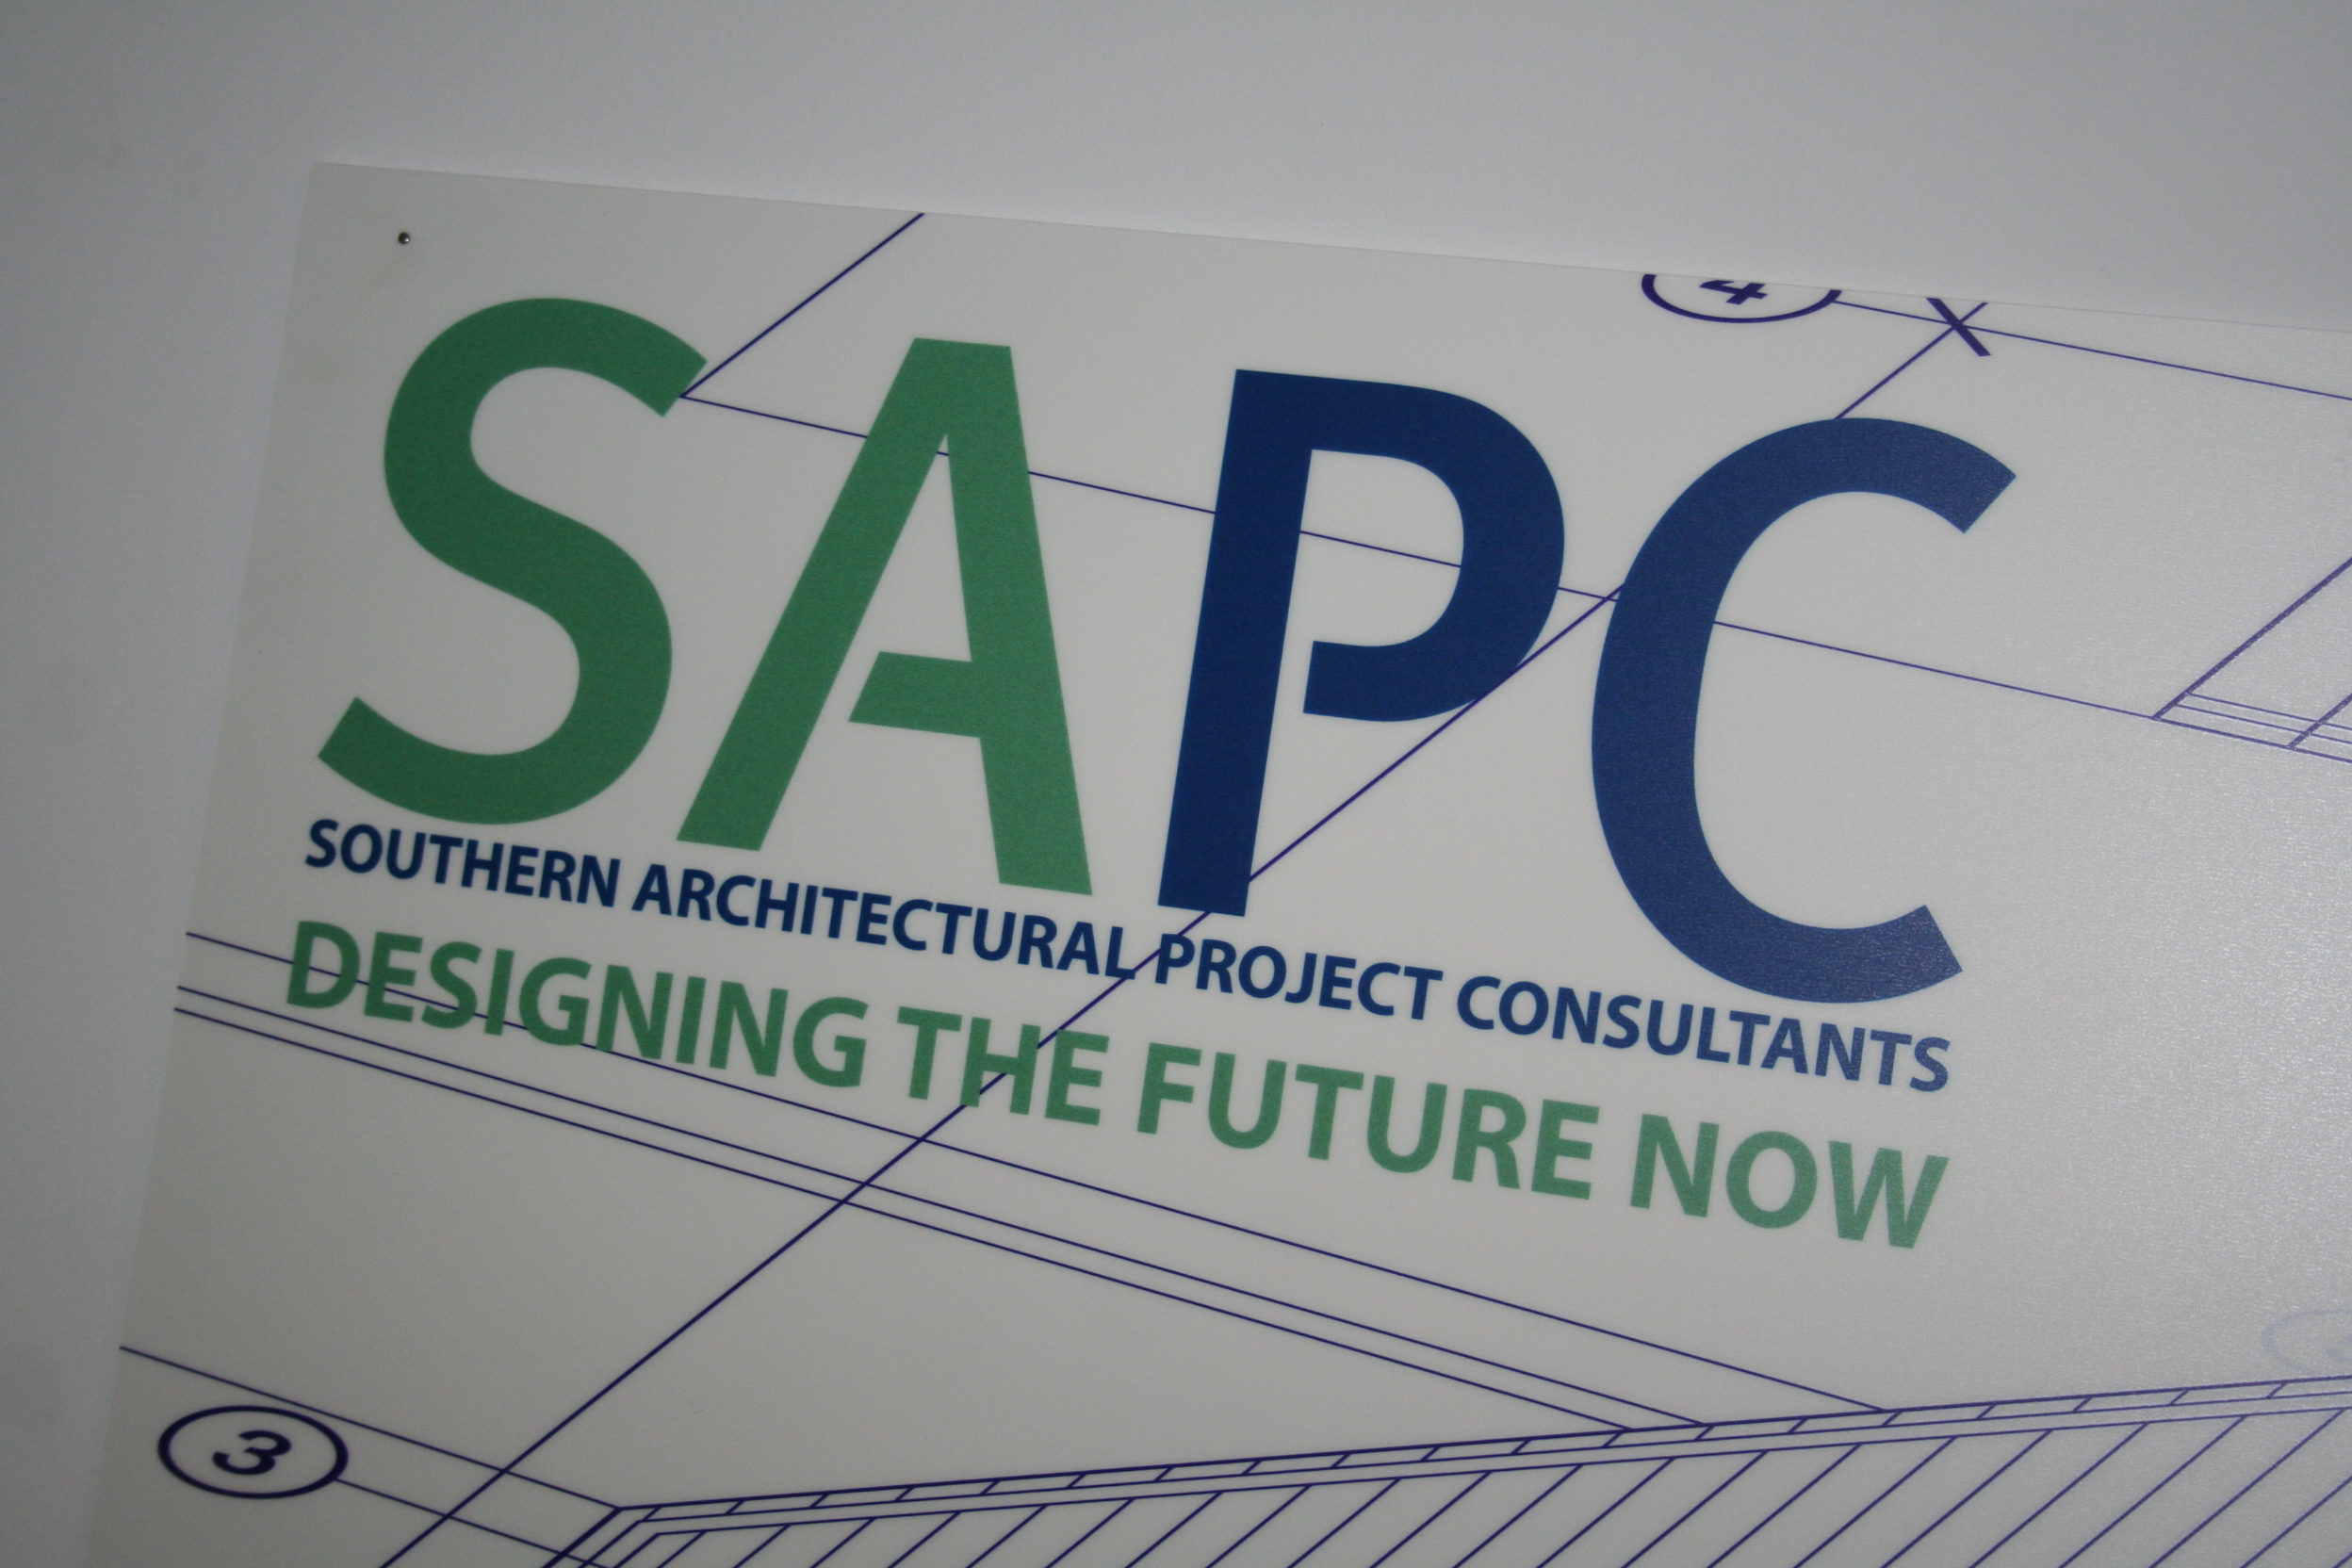 St Austell Printing Company's logo was transformed into Southern Architectural Planning Consultants for the latest Rosamunde Pilcher film